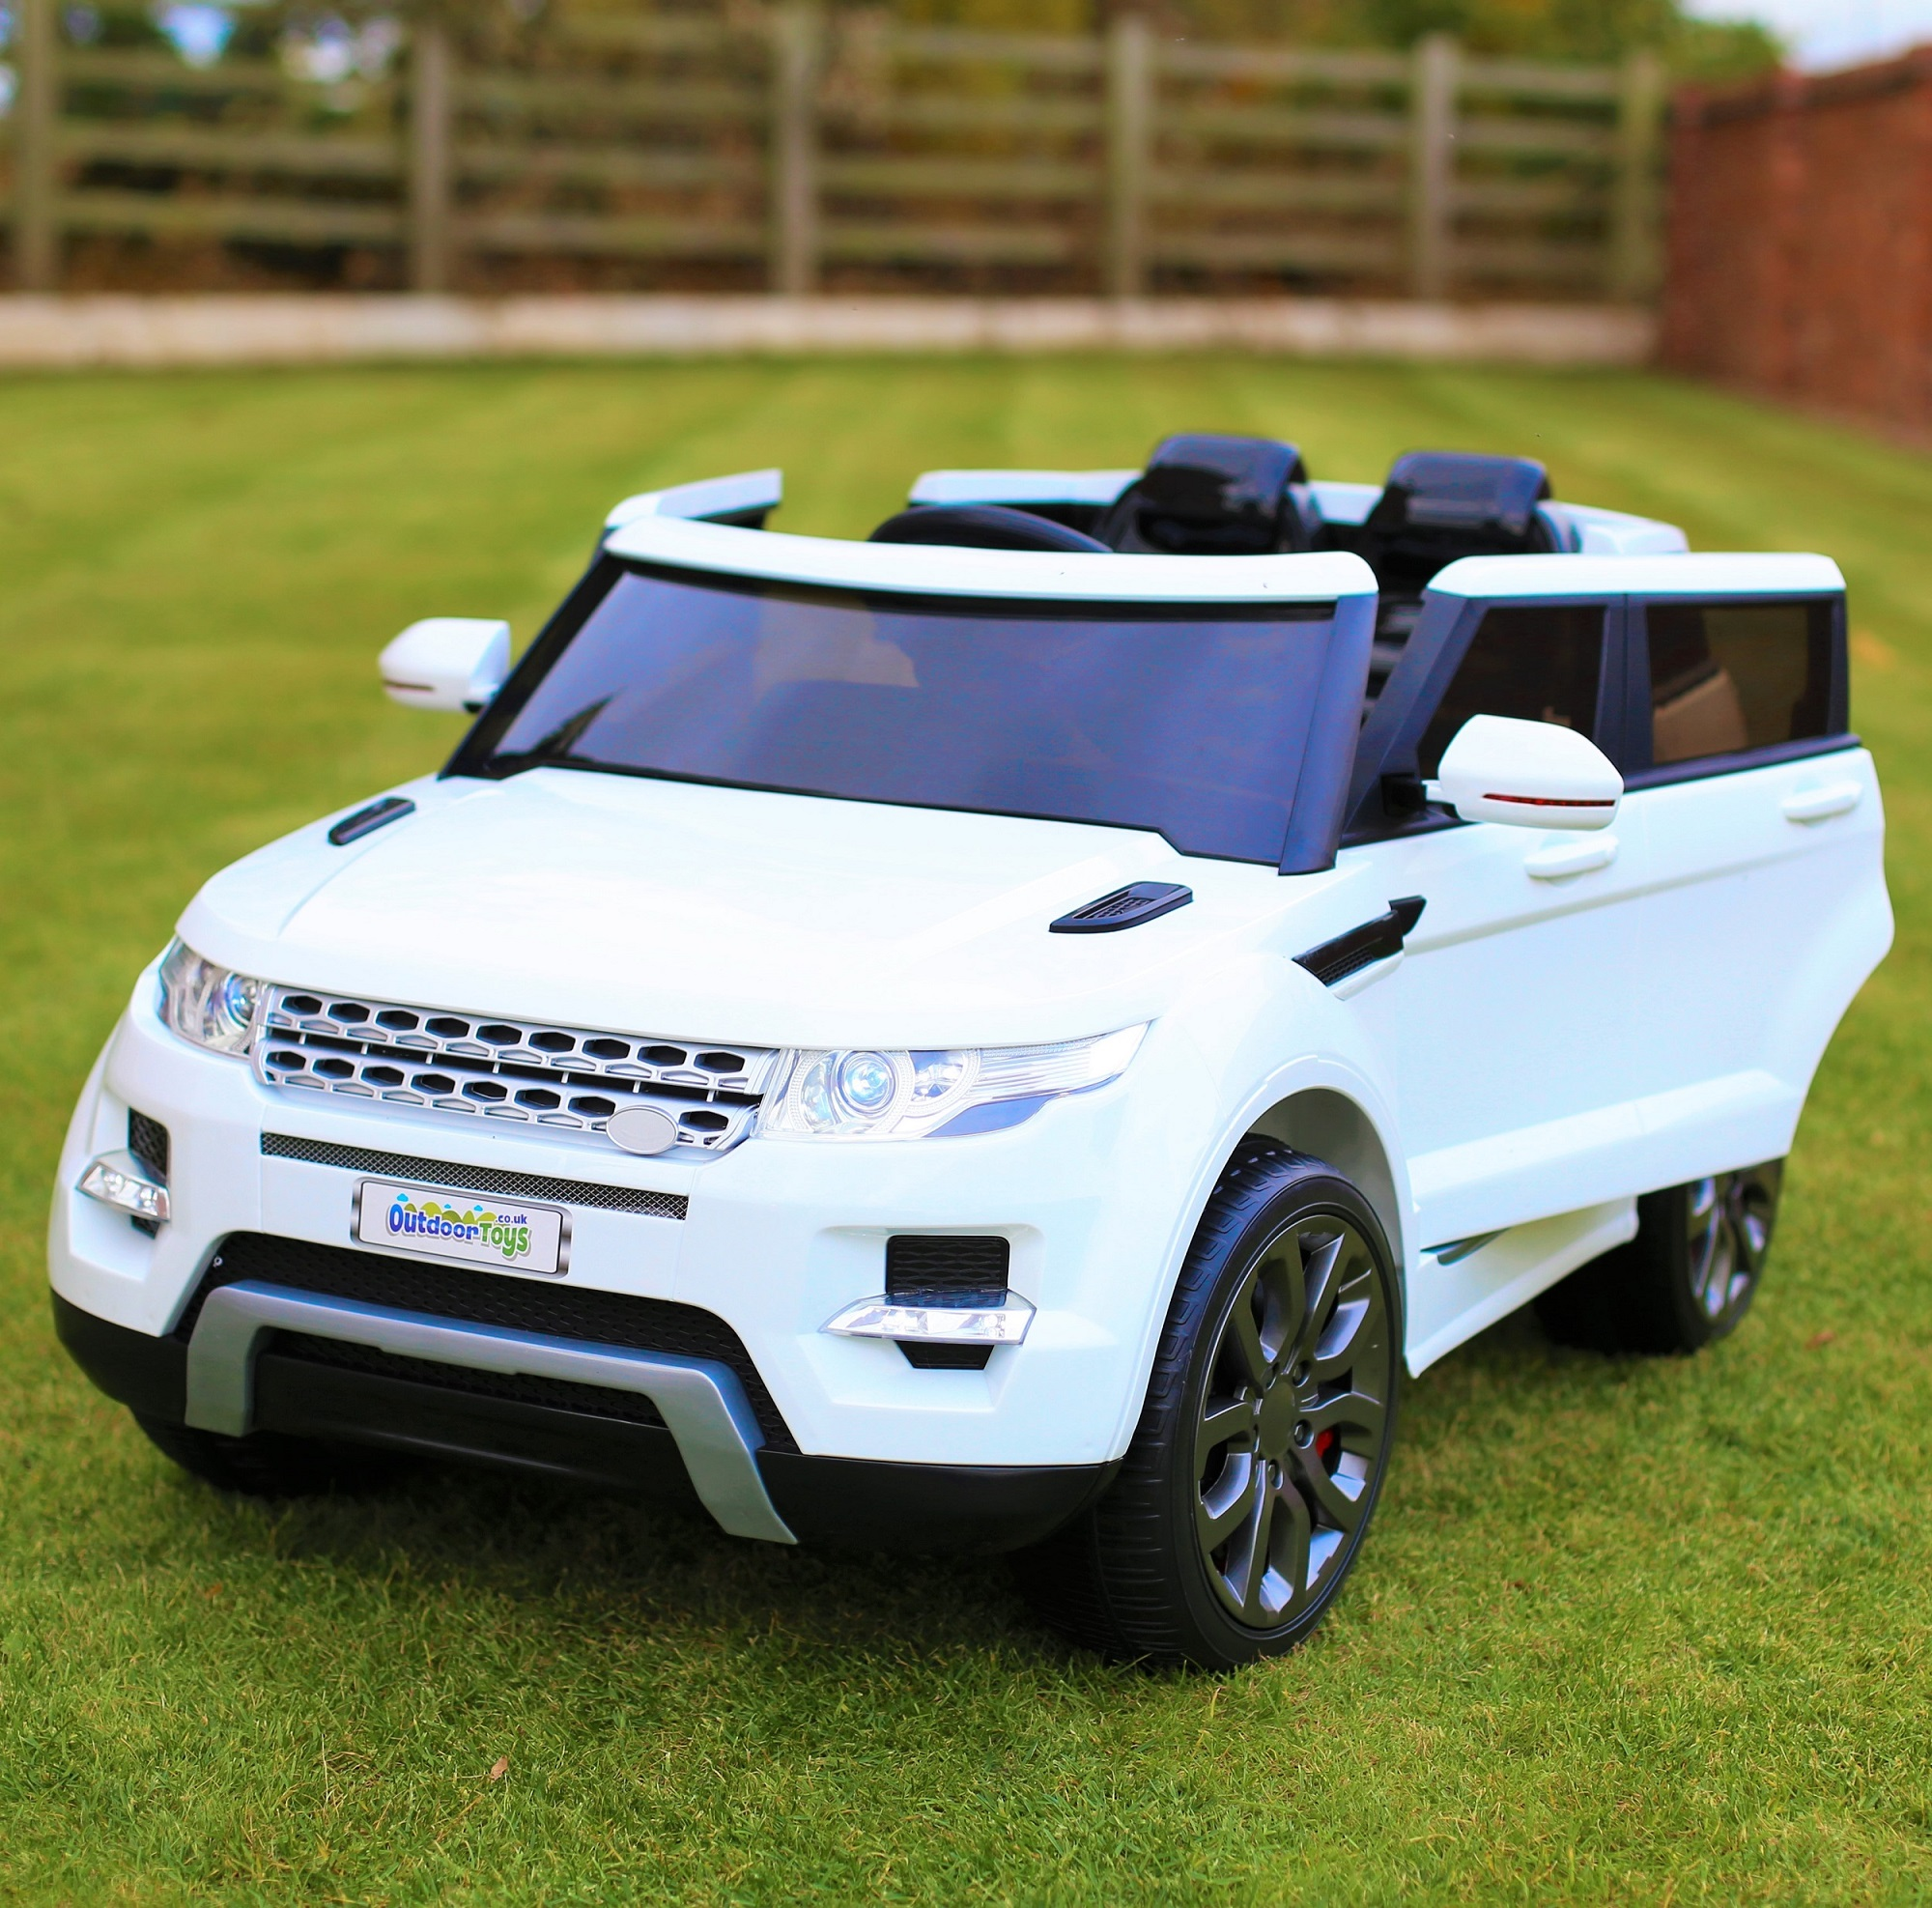 Maxi Range Rover Hse Sport Style Electric Battery Ride On Car